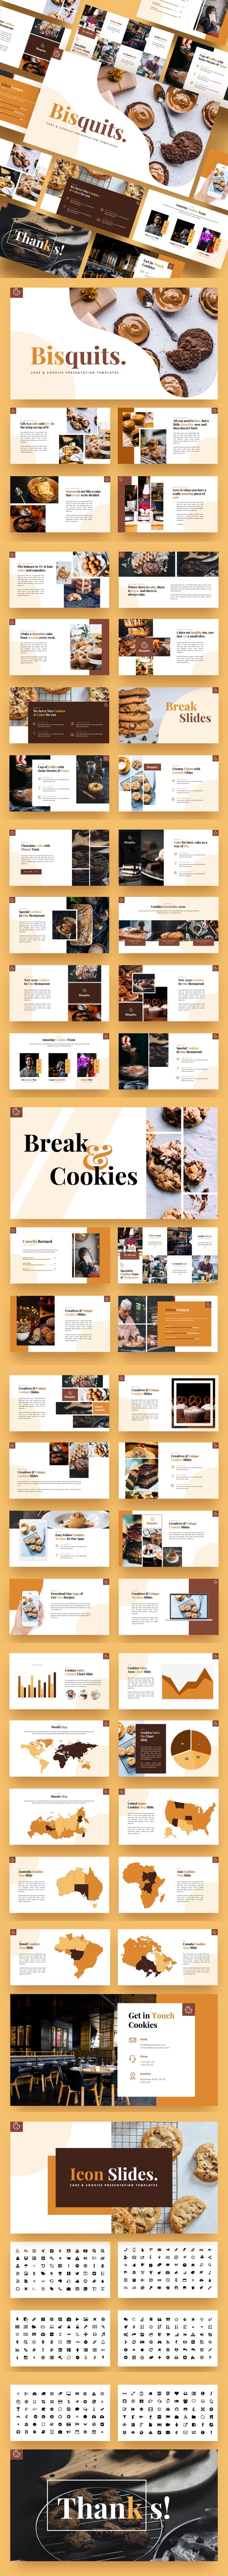 Bisquits - Cake & Cookies Powerpoint Template - Business PowerPoint Templates